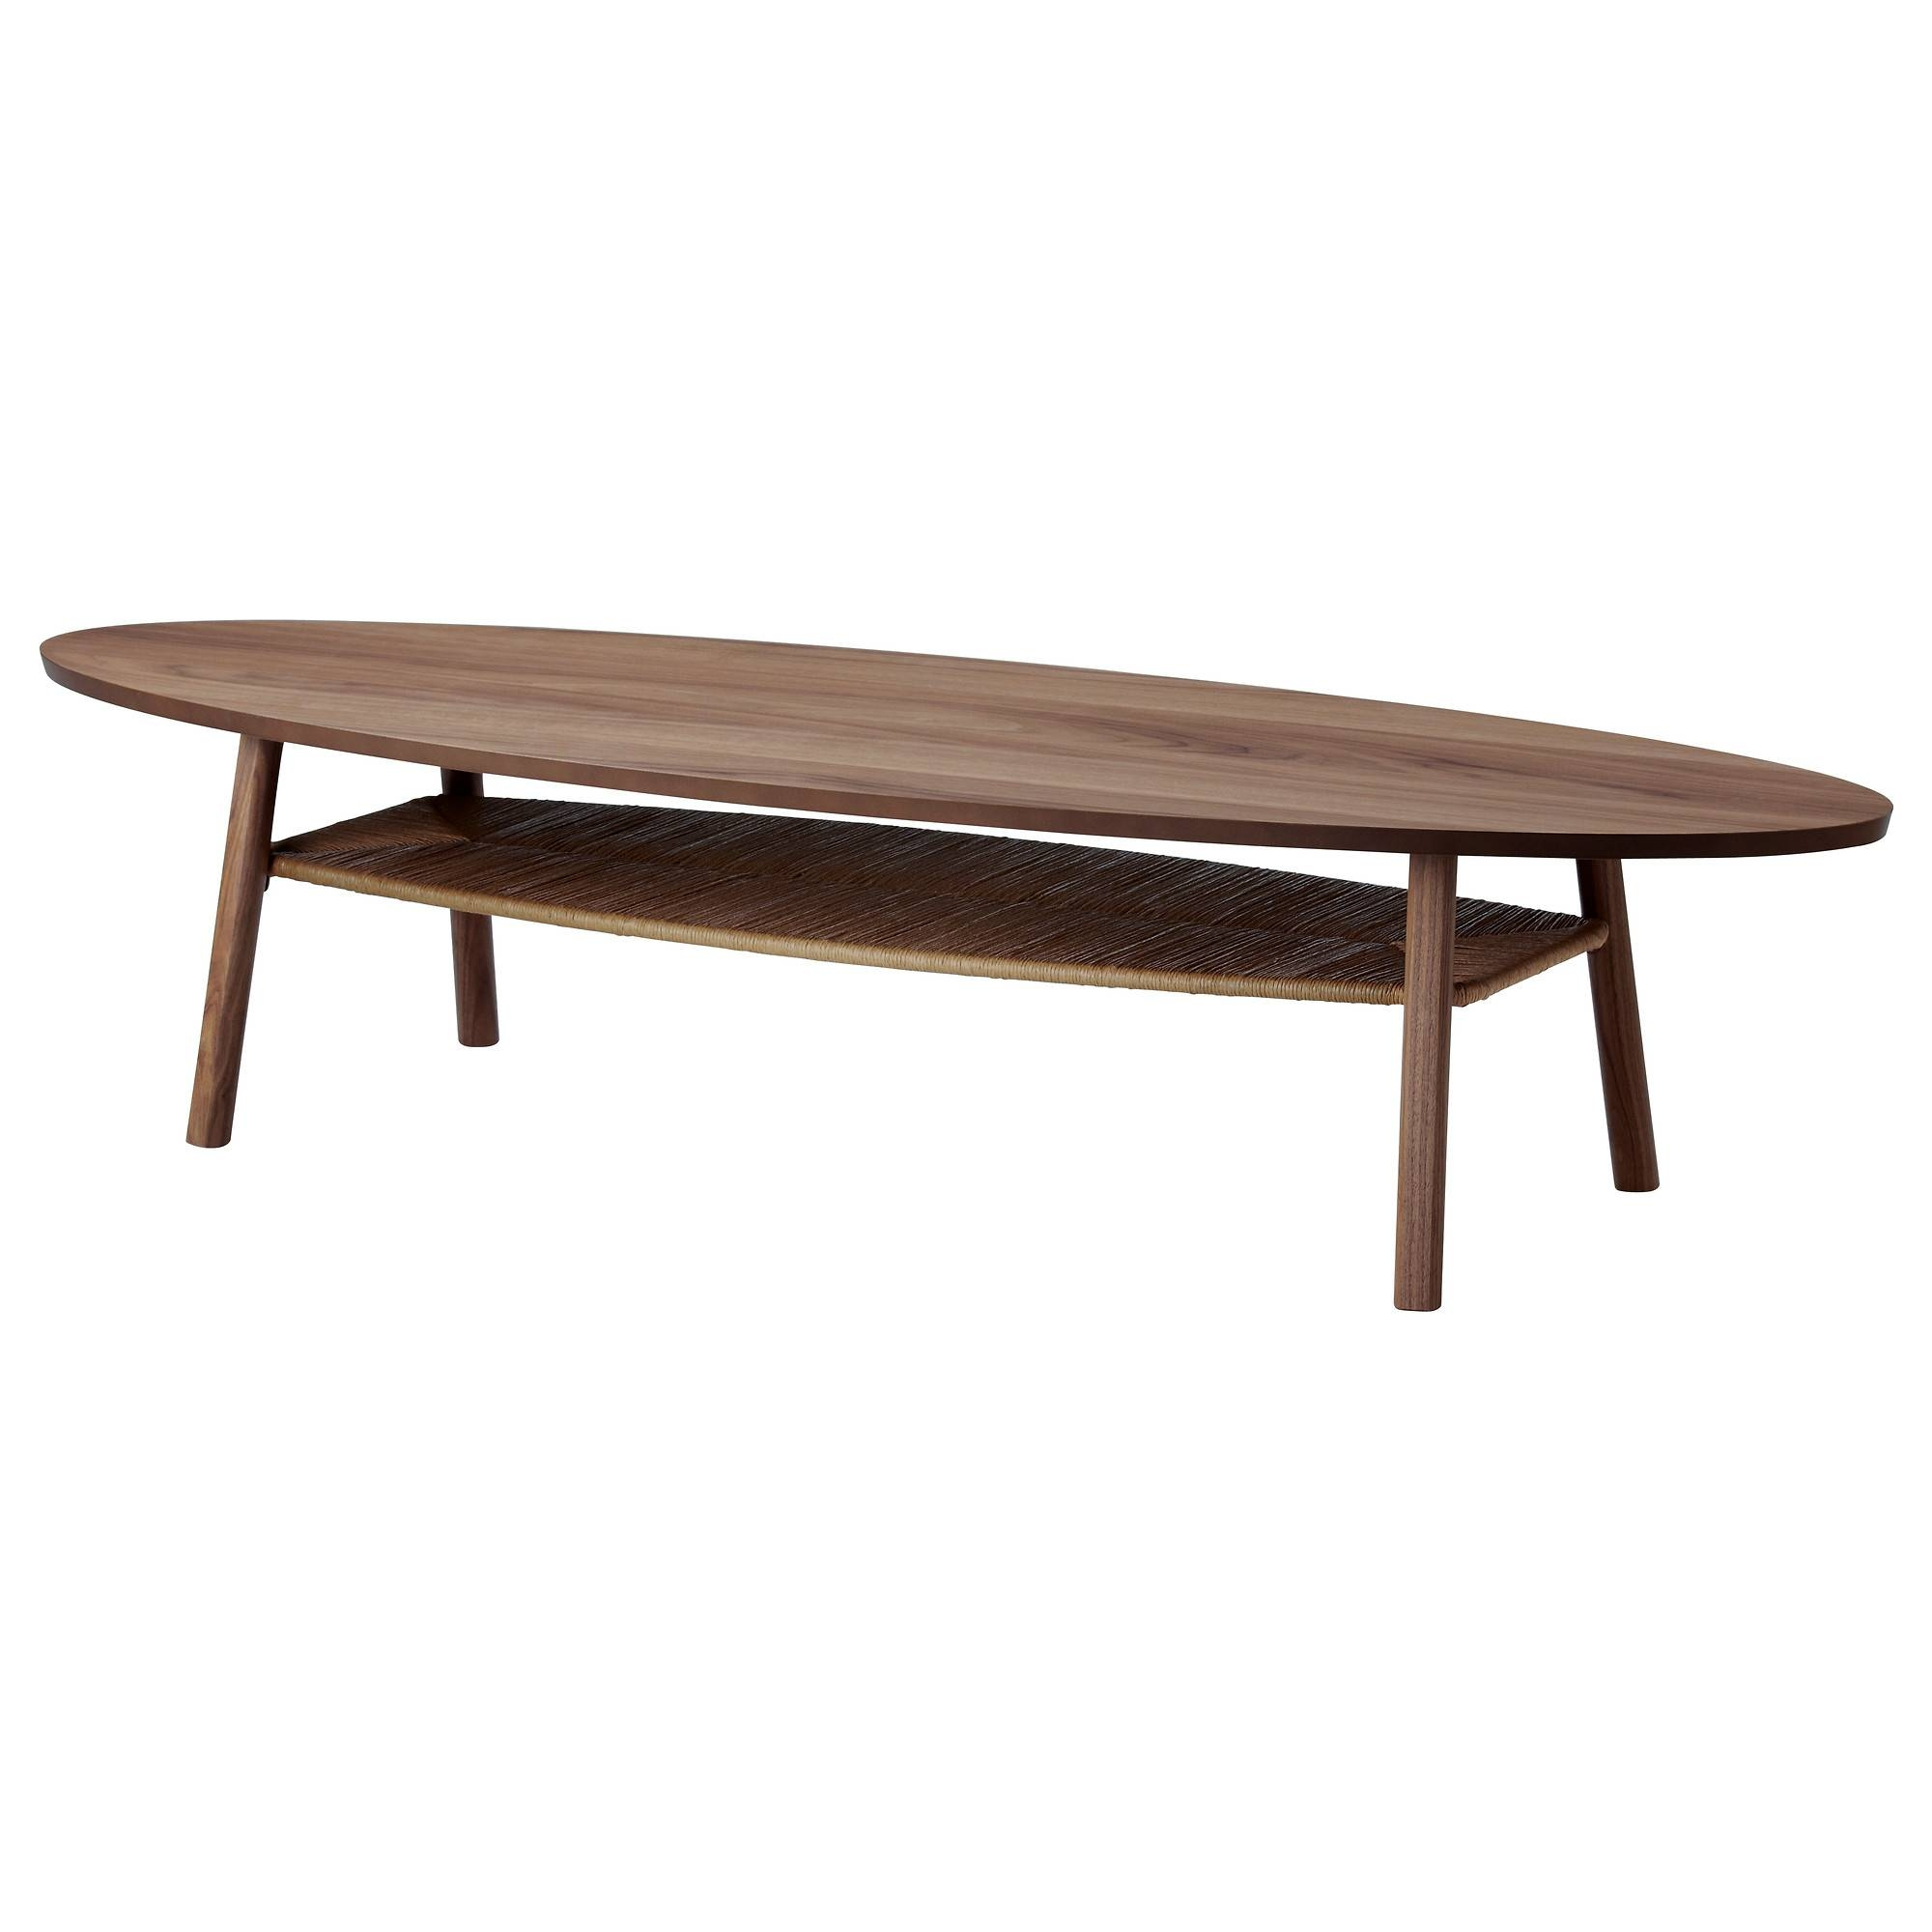 Coffee Tables & Console Tables - Ikea for Oval Wood Coffee Tables (Image 8 of 30)